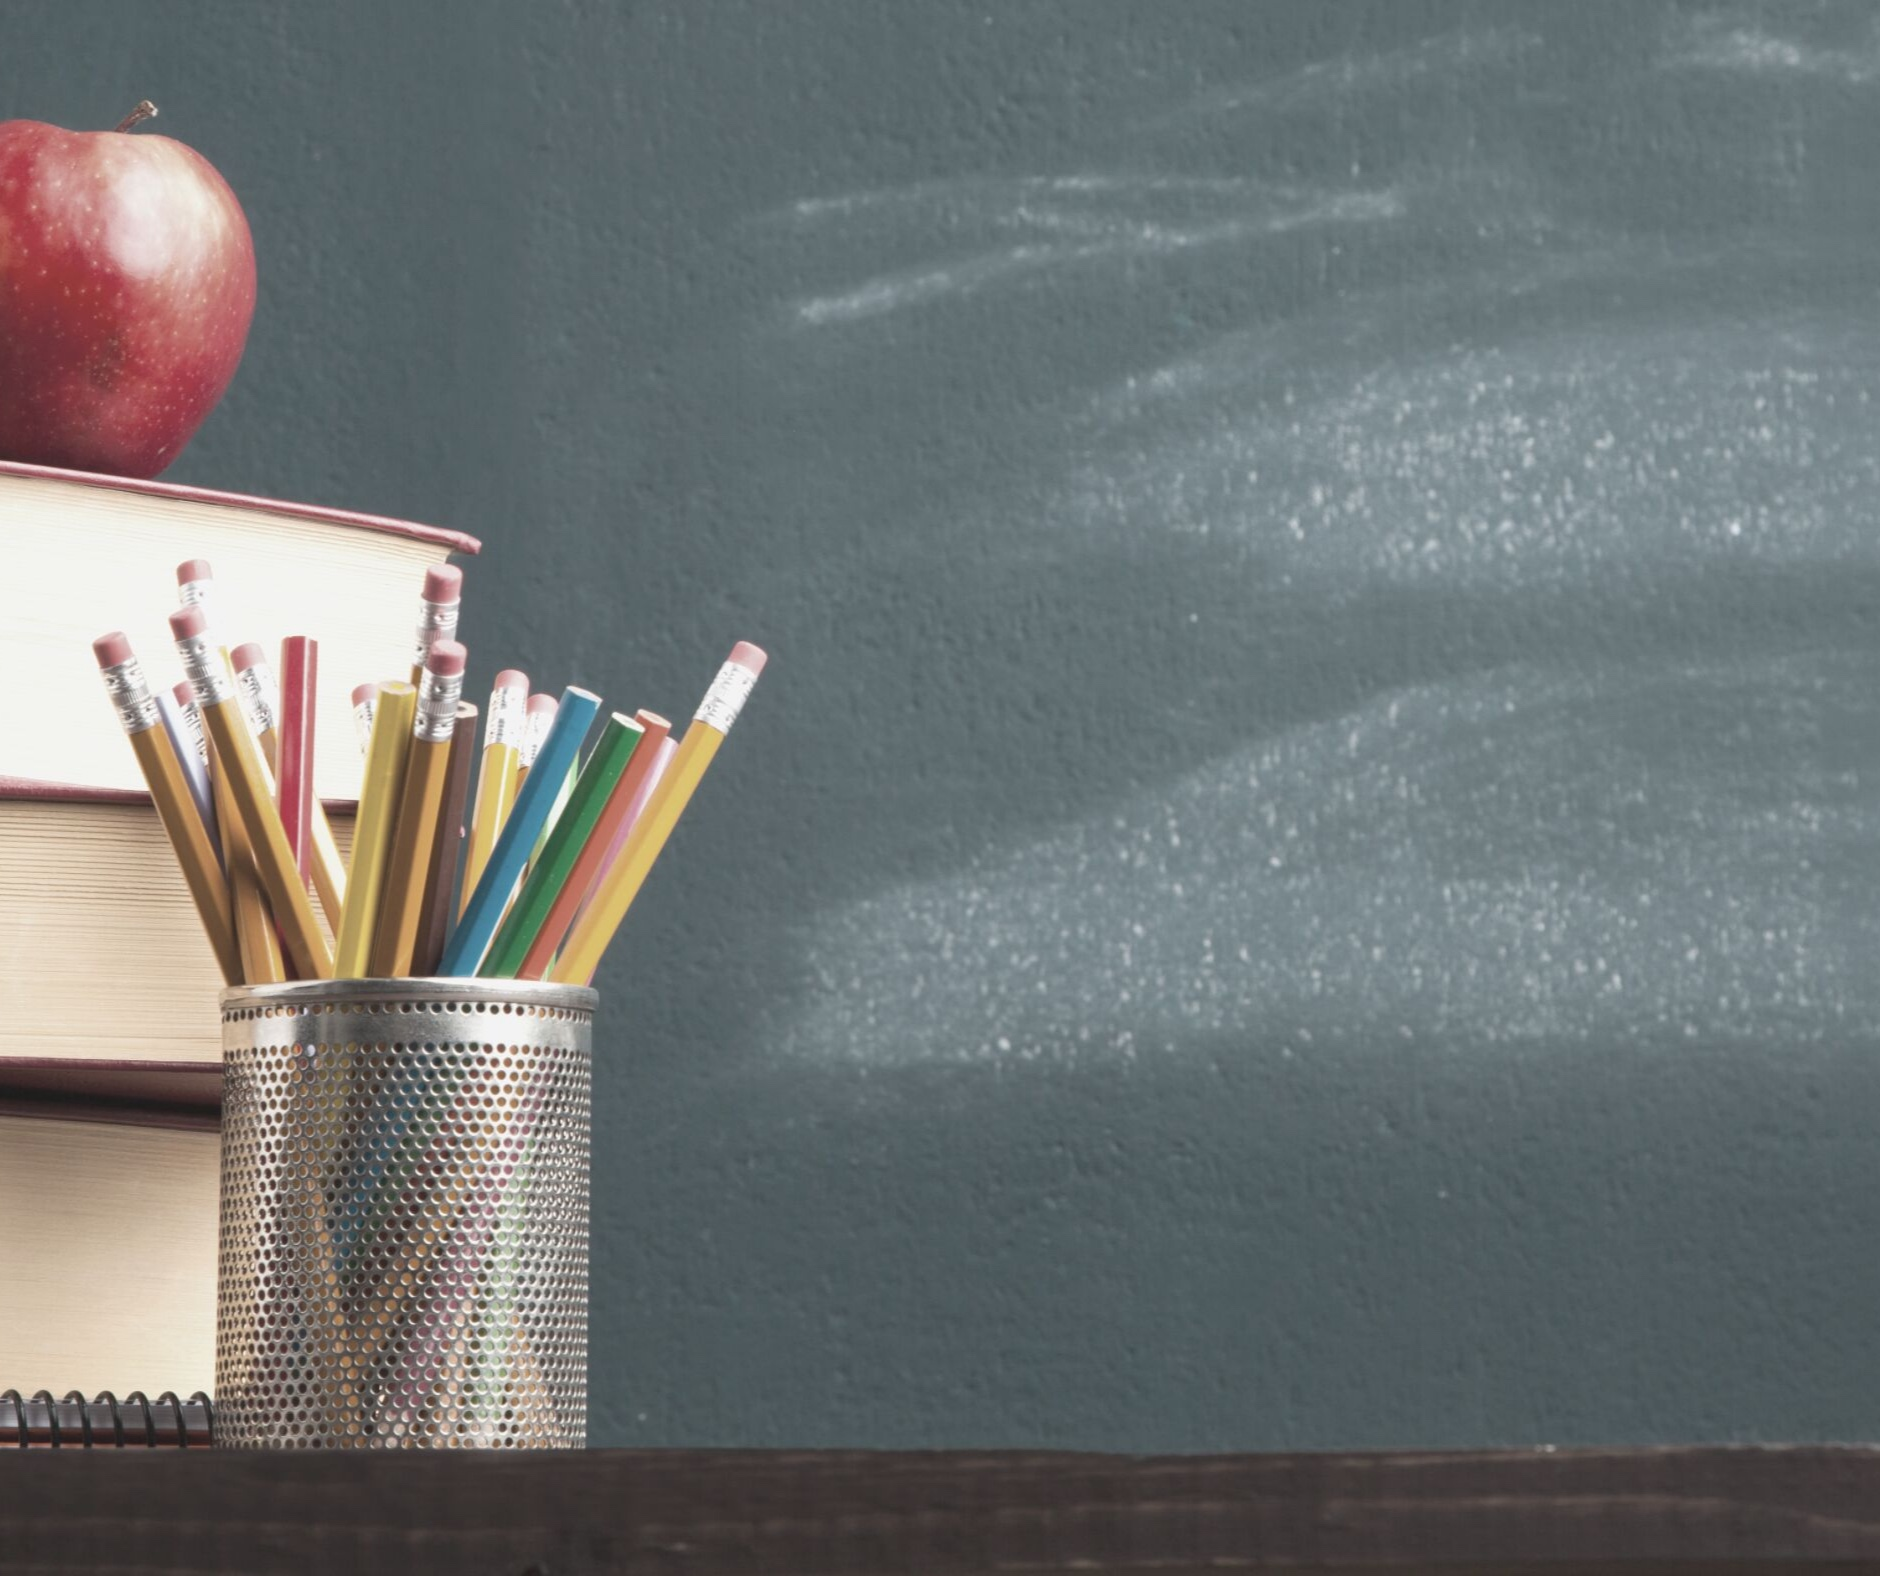 Image of chalkboard books and pencil holder with Apple